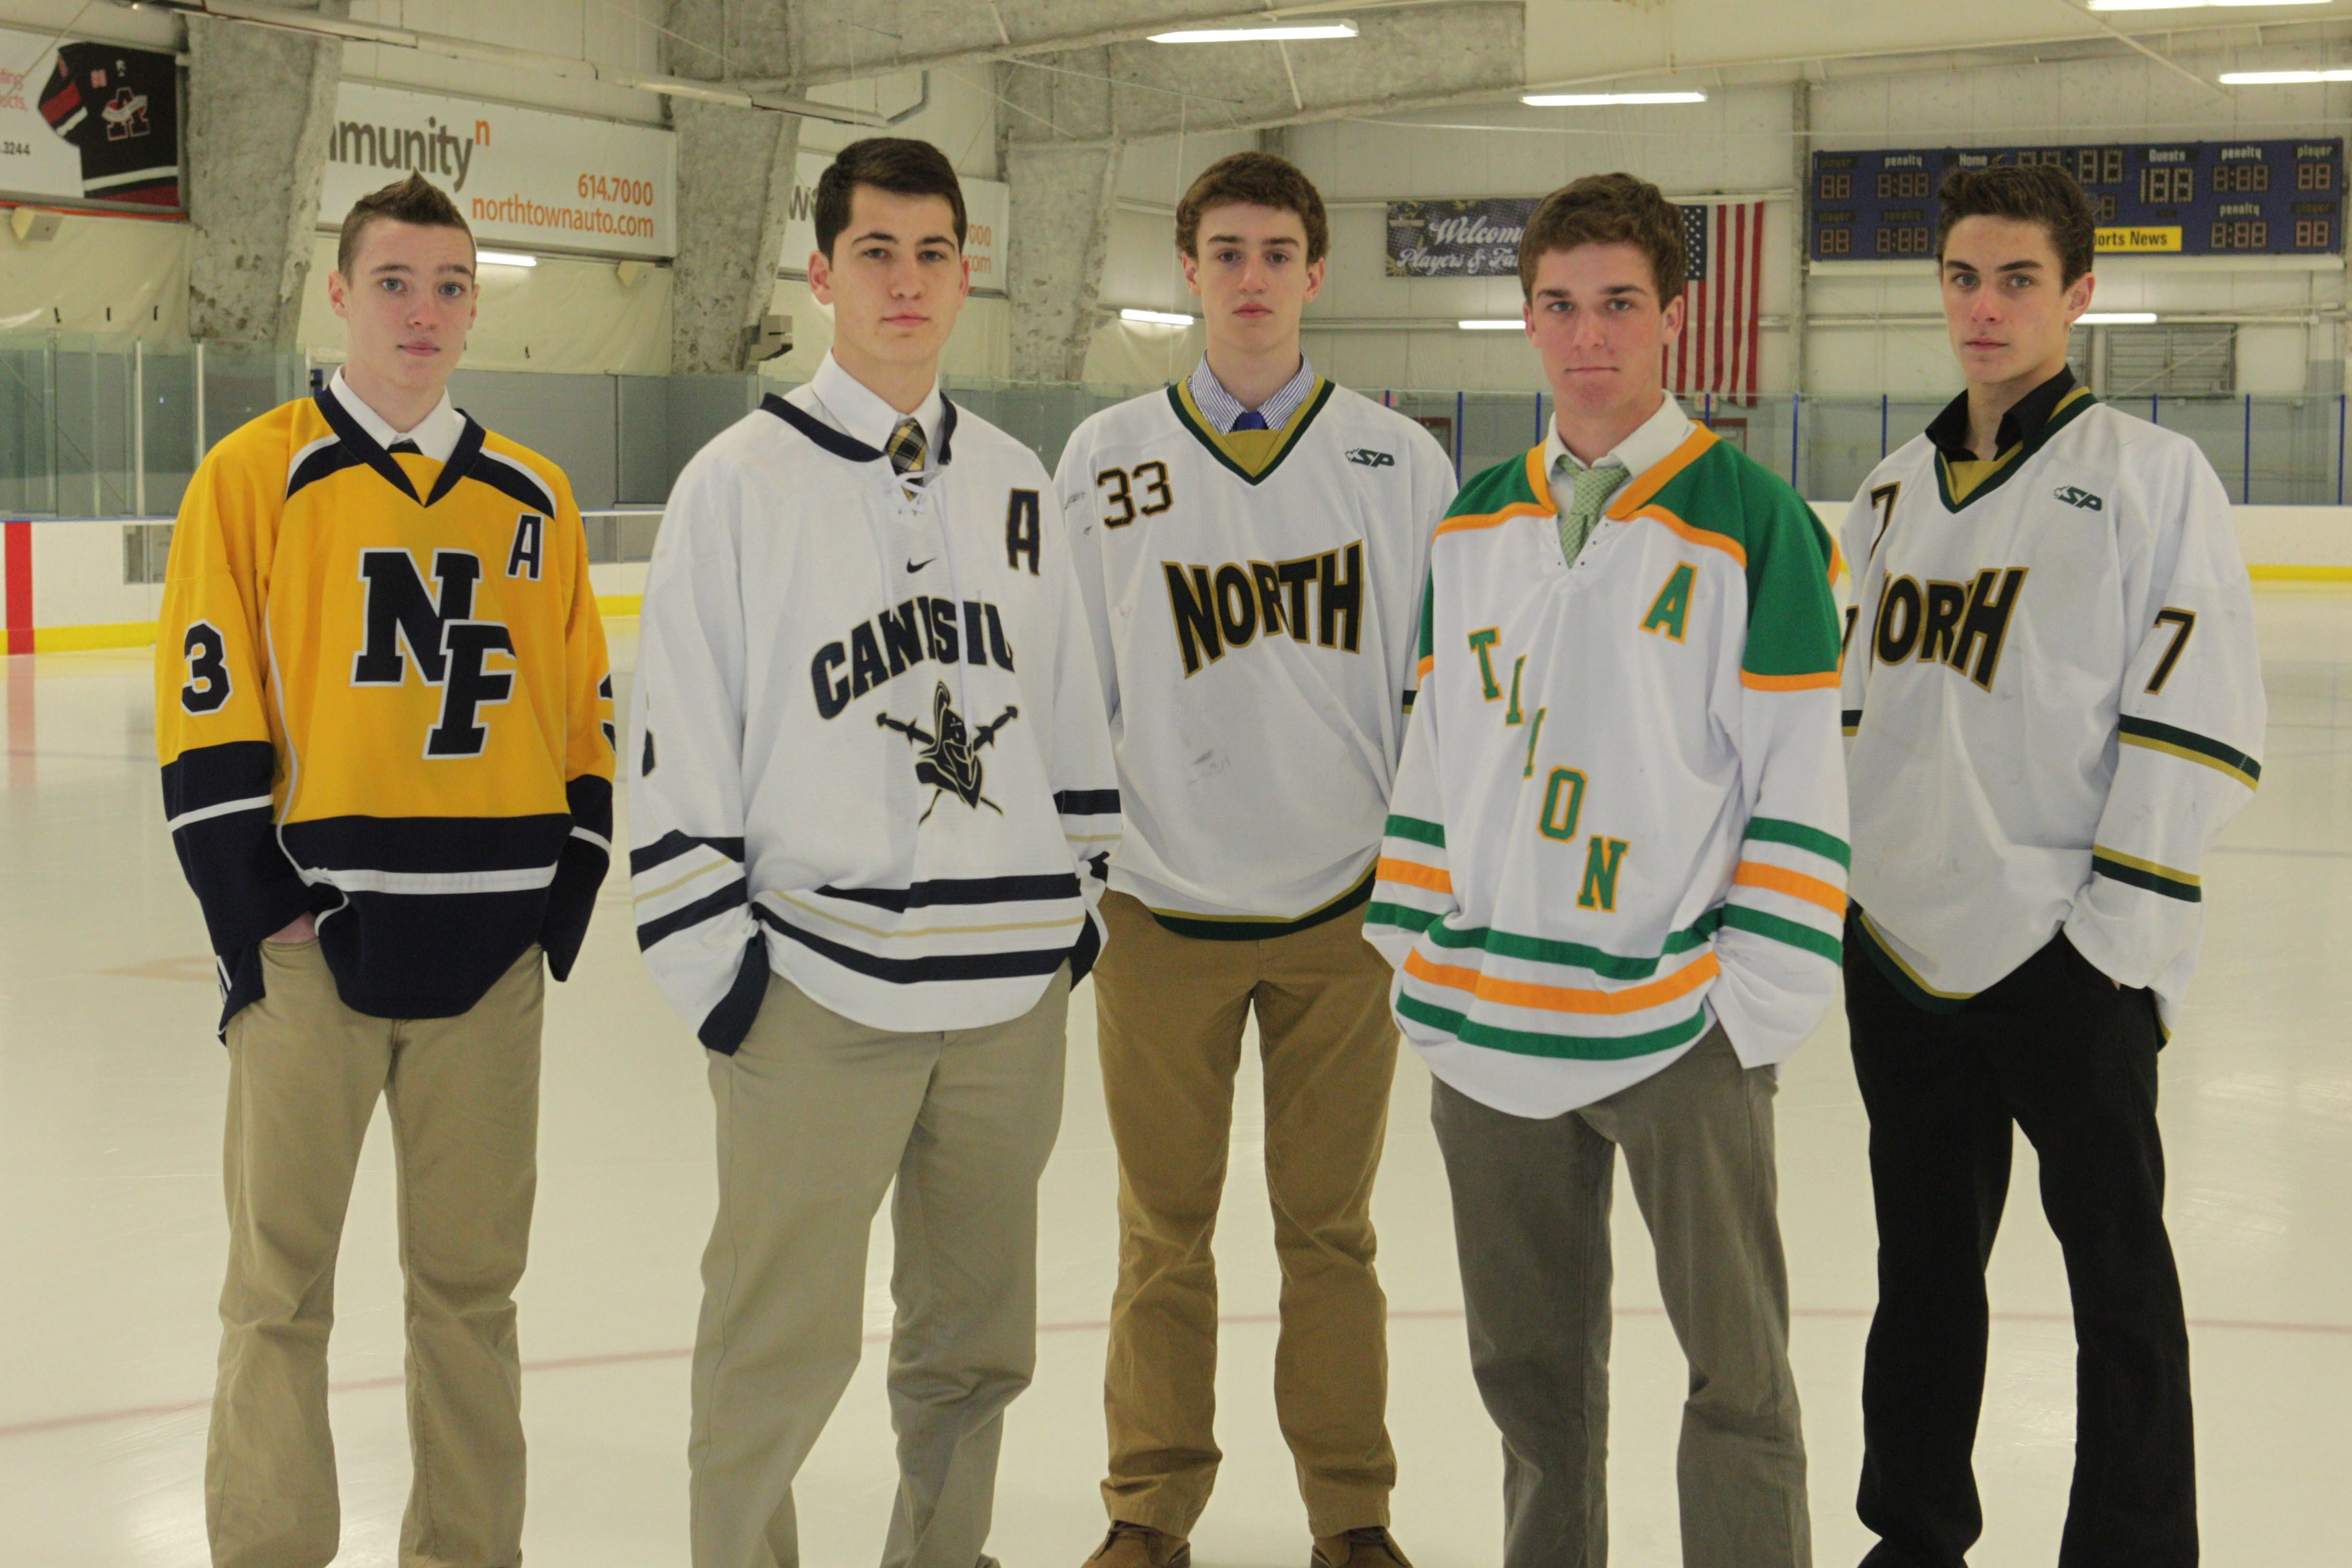 All- WNY boys Federation hockey All-Stars were chosen. For the large school division from left are, Alex Hailey, center for Niagara Falls, Steven Skinner, defenseman for Canisius, Matthew Ladd, goalie for Williamsville North, Connor Fields, center for Timon St. Jude and Bryce Ferrell, winger for Williamsville North. Photo taken, Monday, March 24, 2014.  (Photo by Sharon Cantillon/Buffalo News)